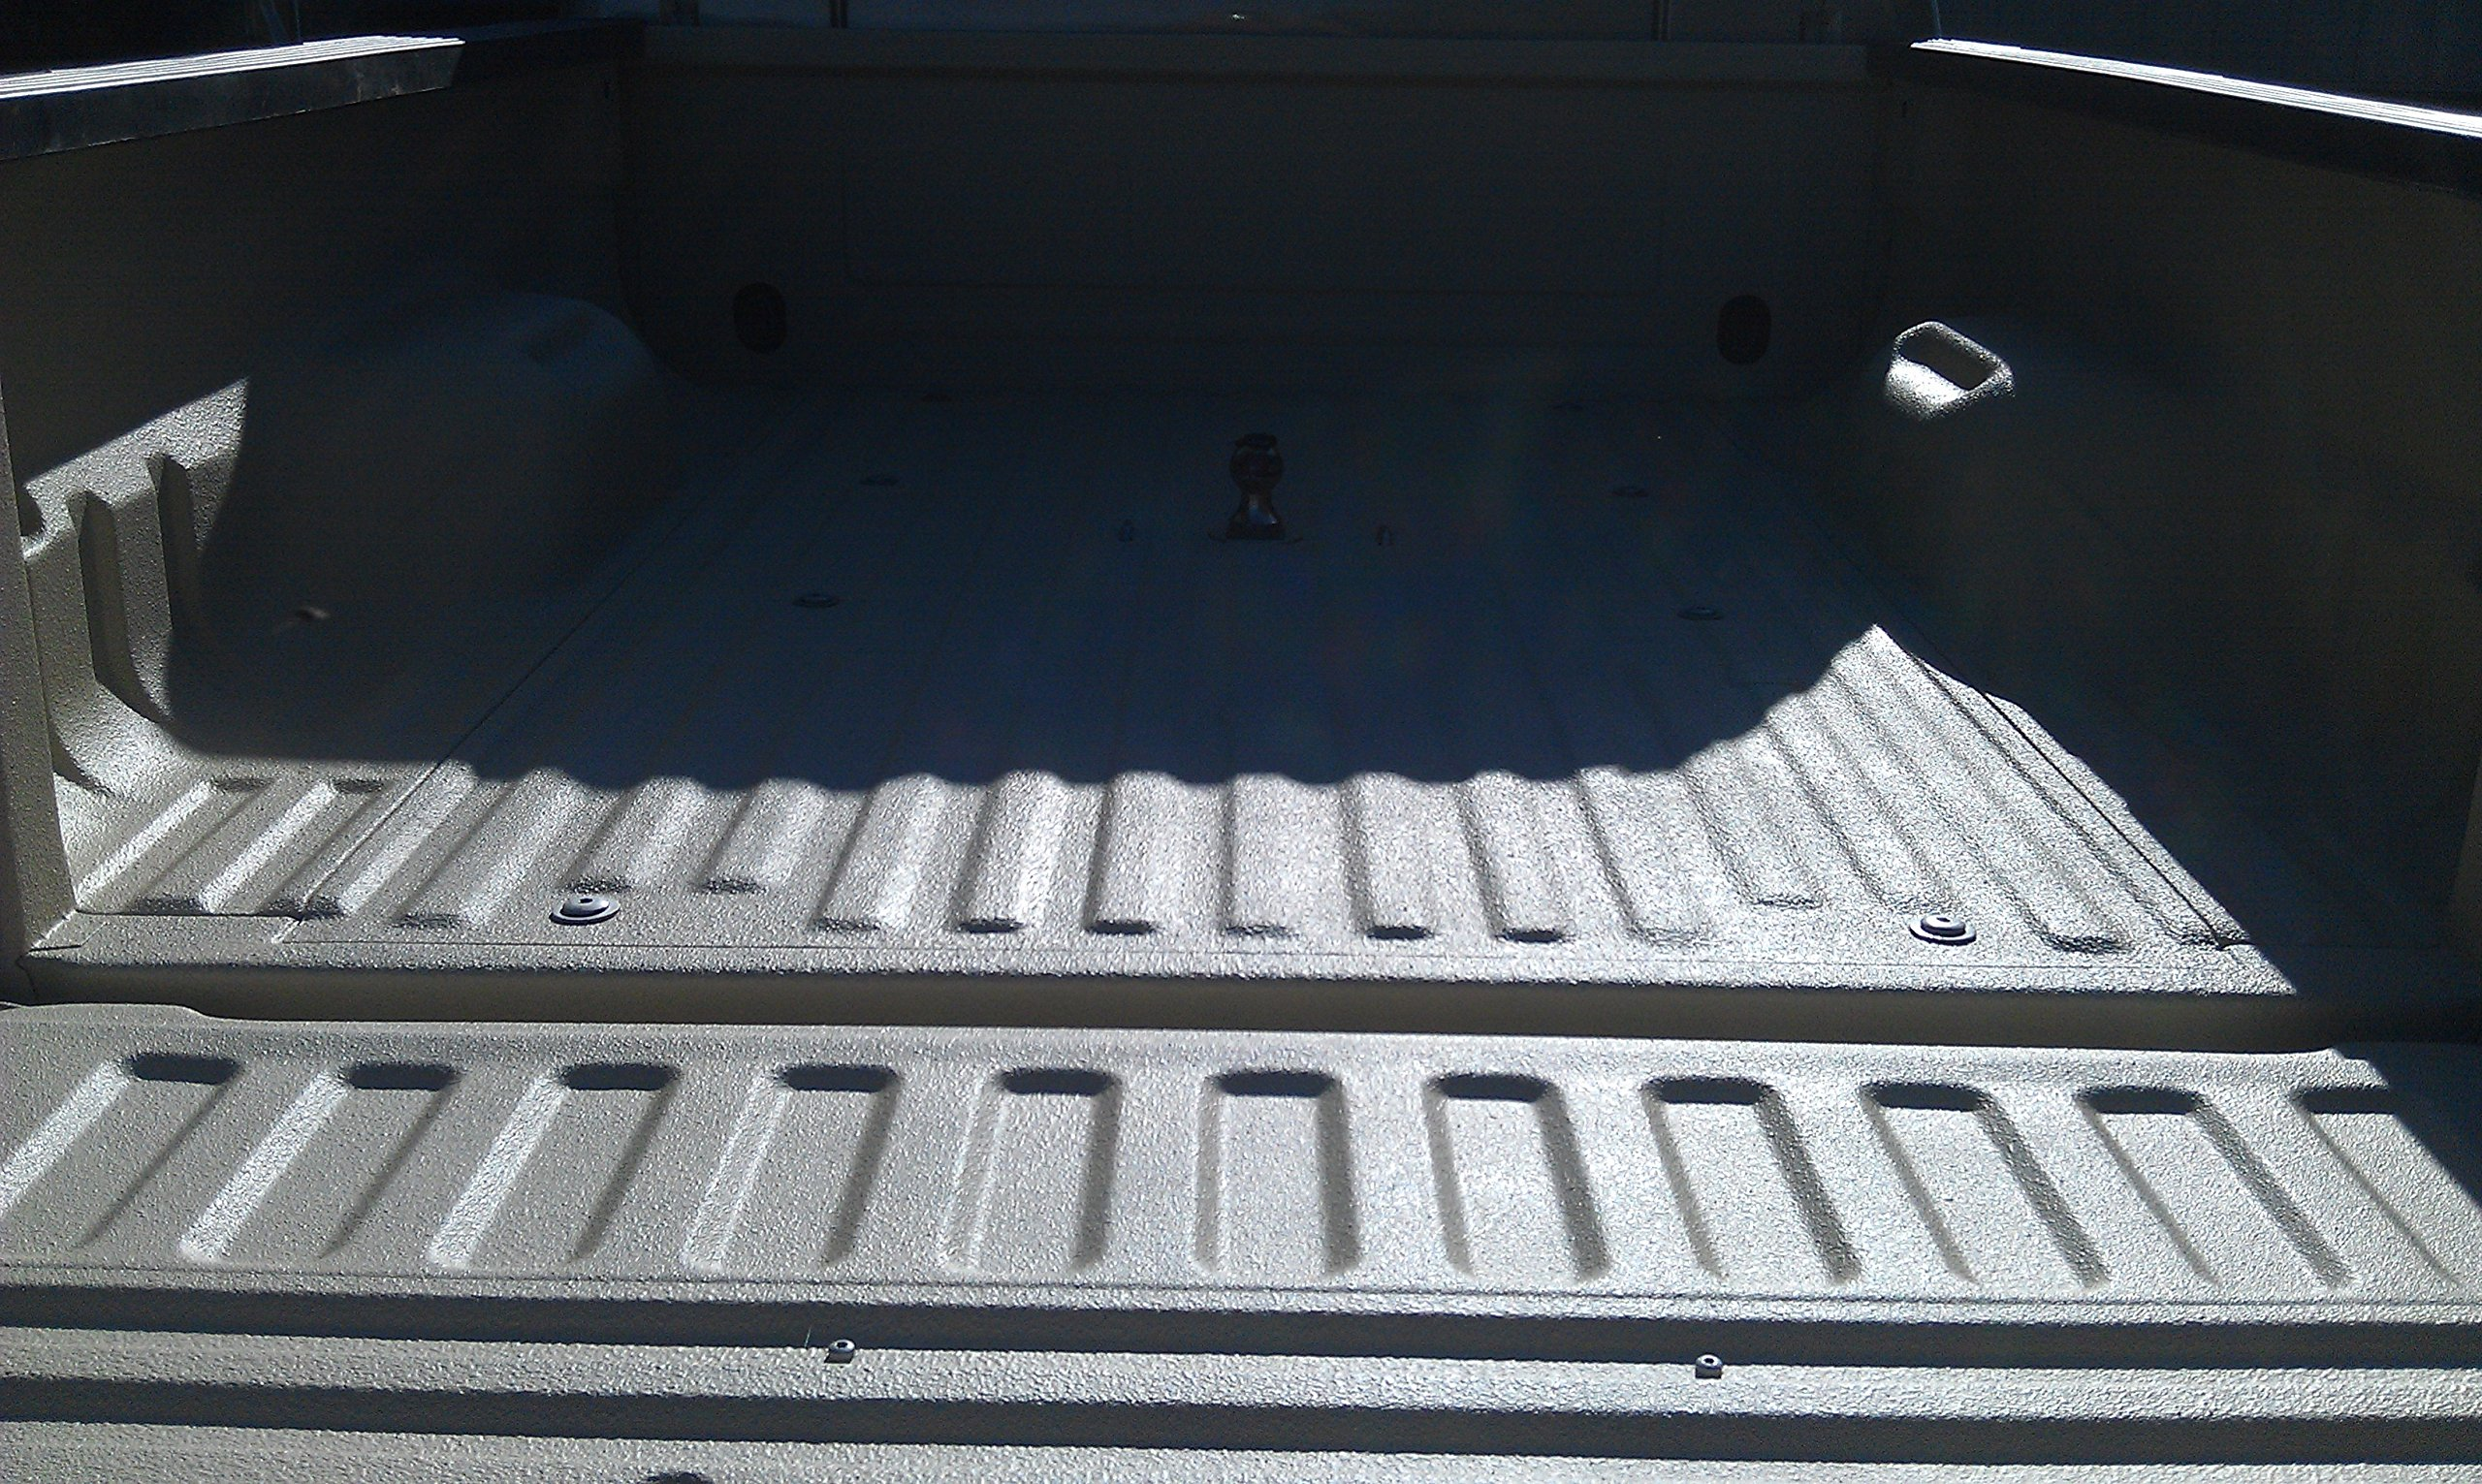 Linerxtreeme spray on Bedliner Kit 3 gallon Black with GUN by LinerXtreeme (Image #4)